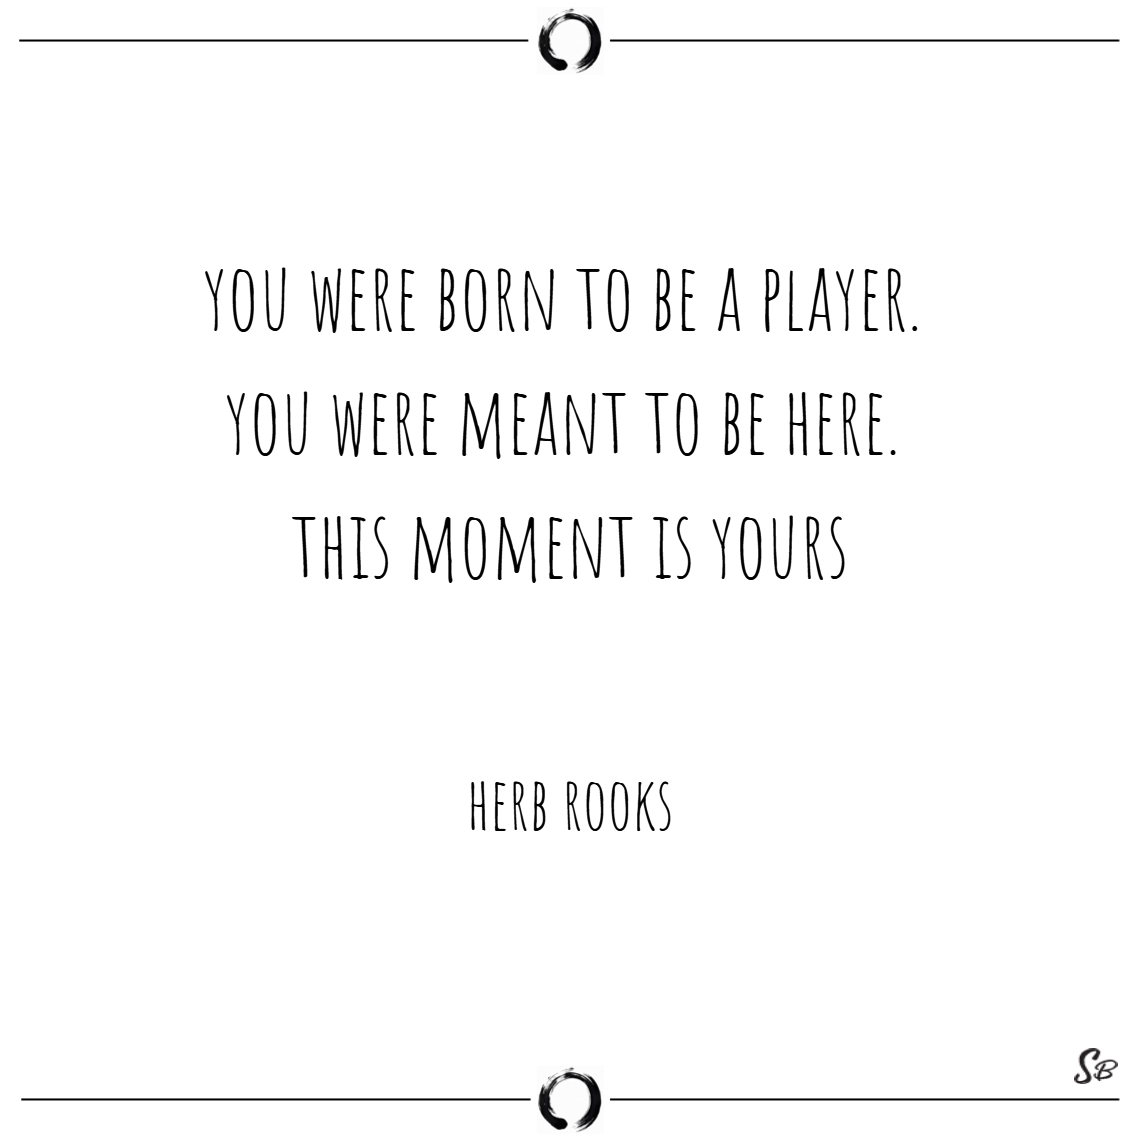 You were born to be a player. you were meant to be